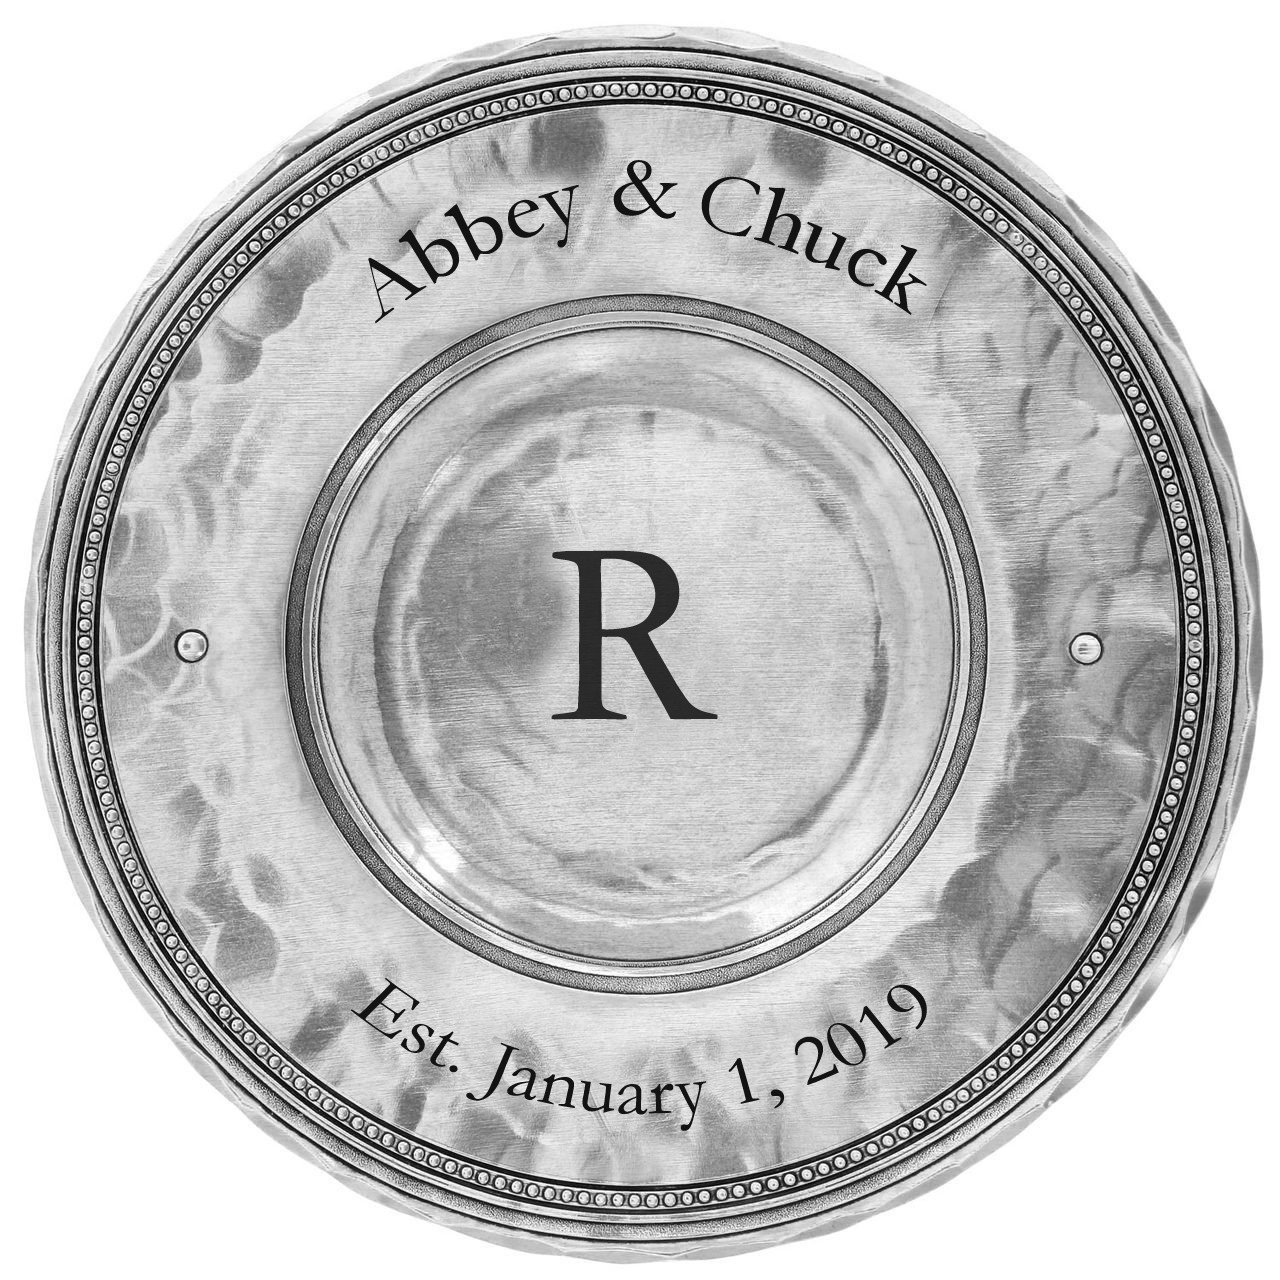 engravable candle plate with monogram for personalized gift giving